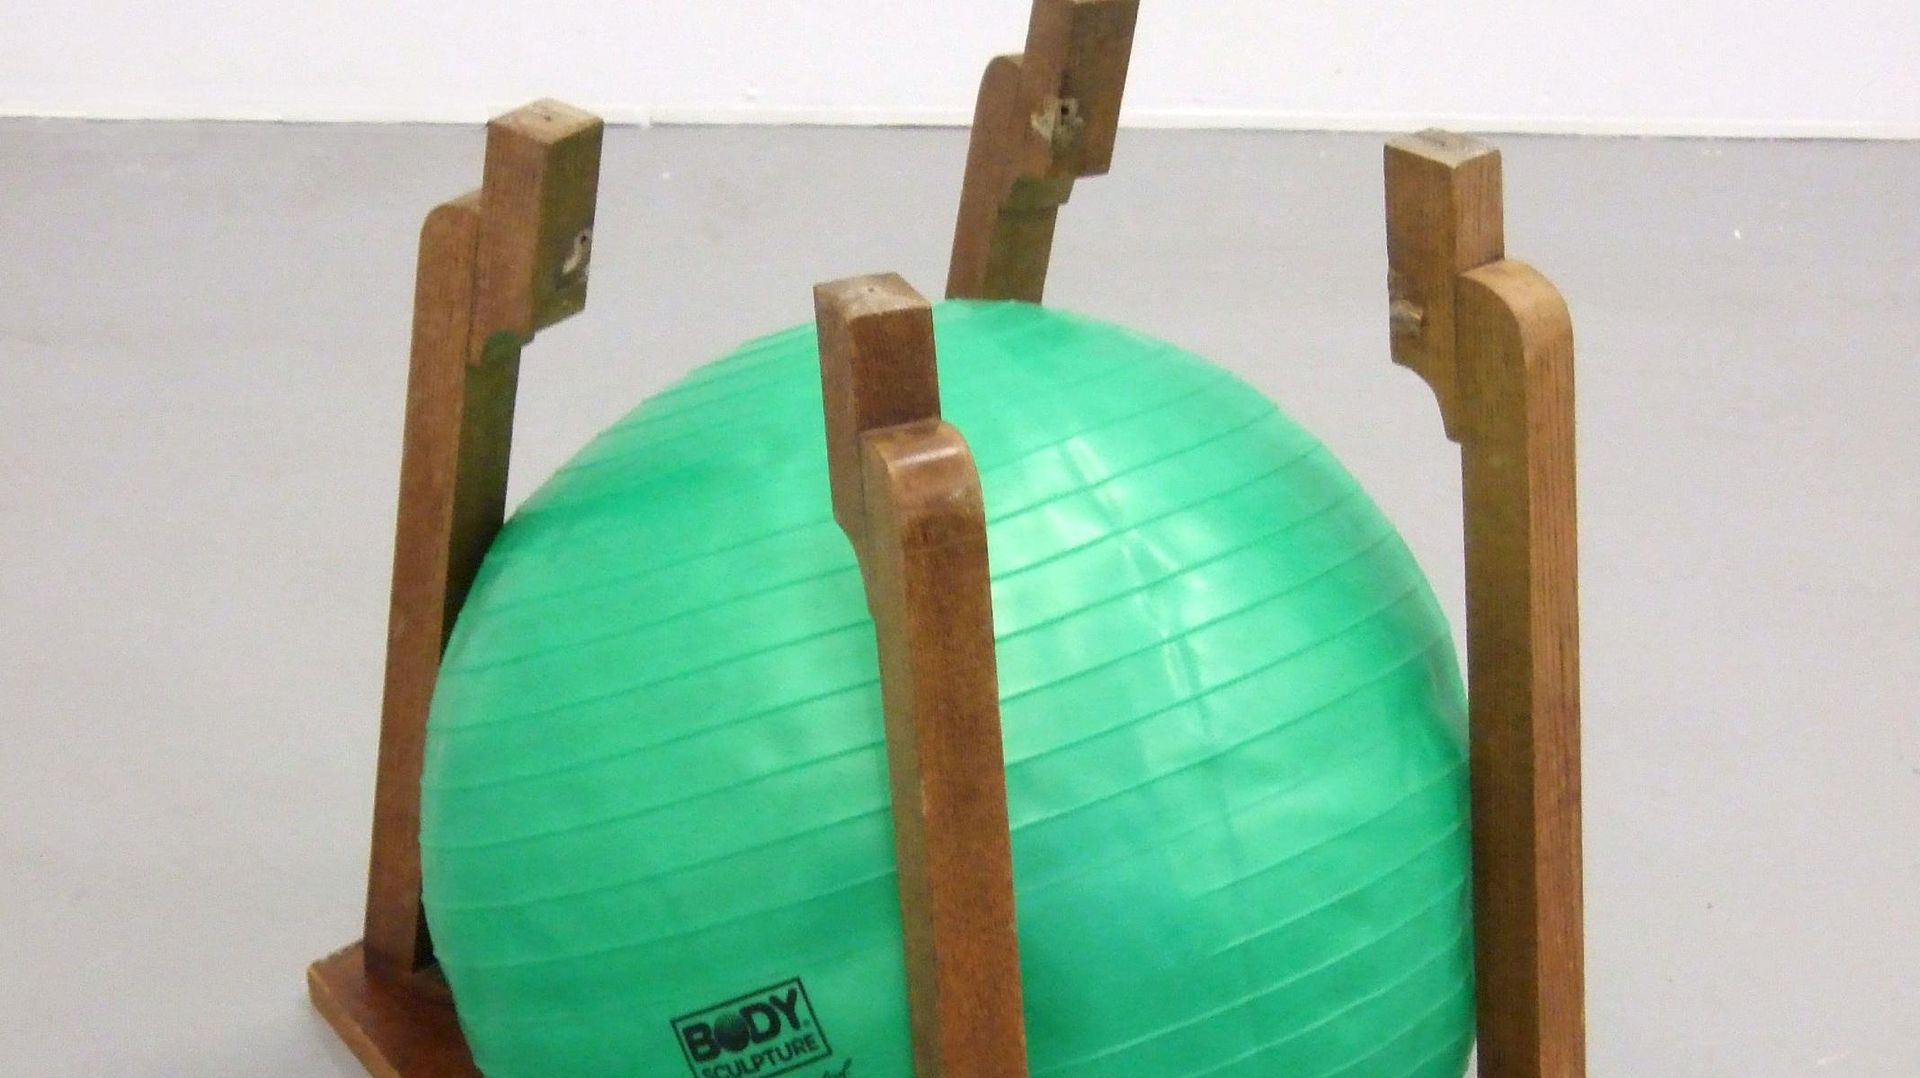 Bettina Buck: In Shape In Control, 2009, wooden table, half inflated rubber ball, 55 x 65 x 50 cm, Courtesy: the artist, Rokeby London and Galerie Opdahl, Berlin